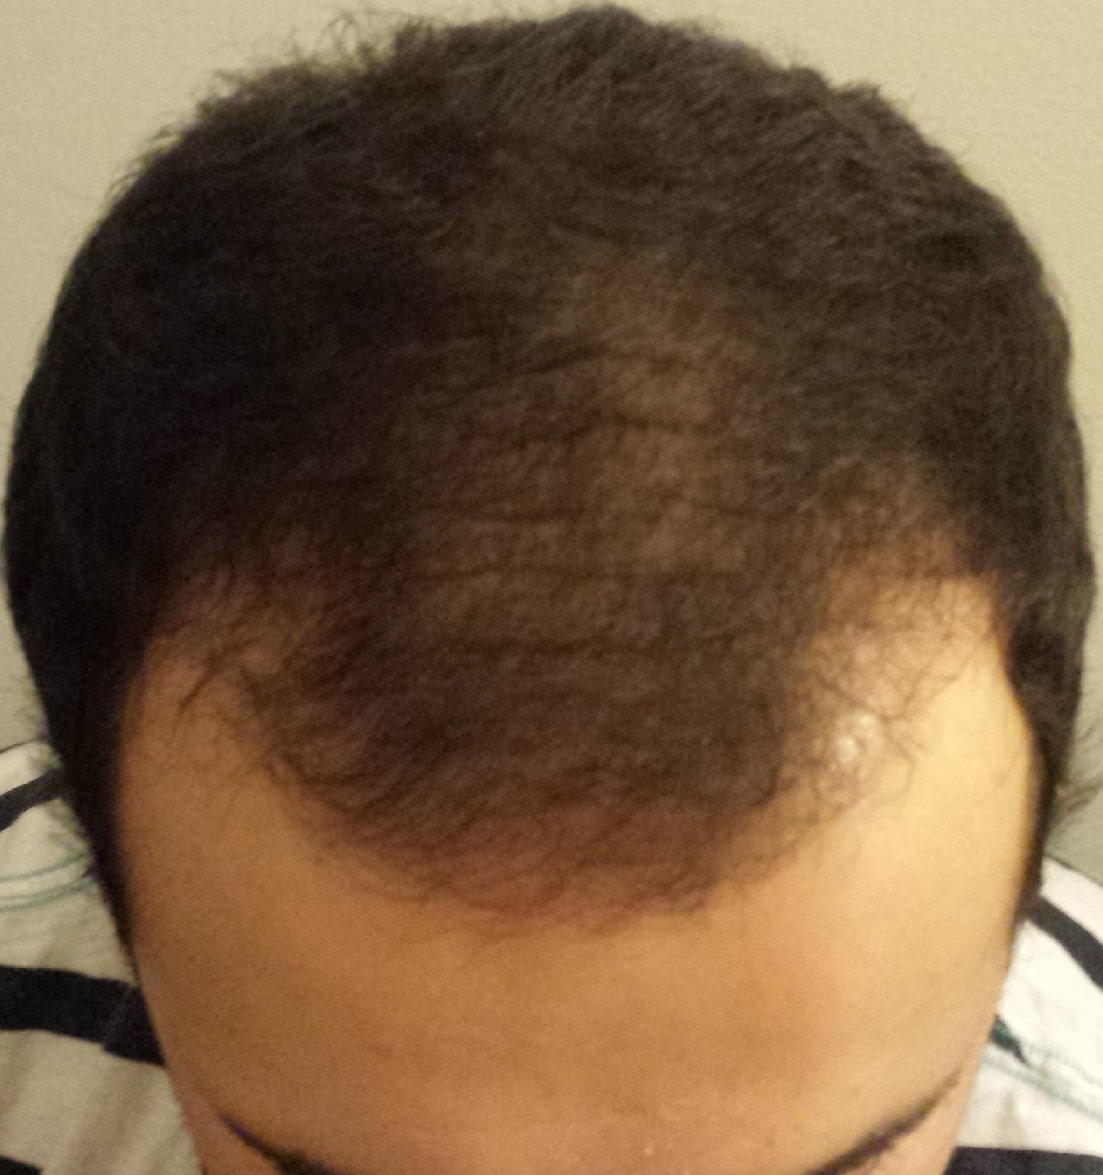 3 months after hair transplant surgery